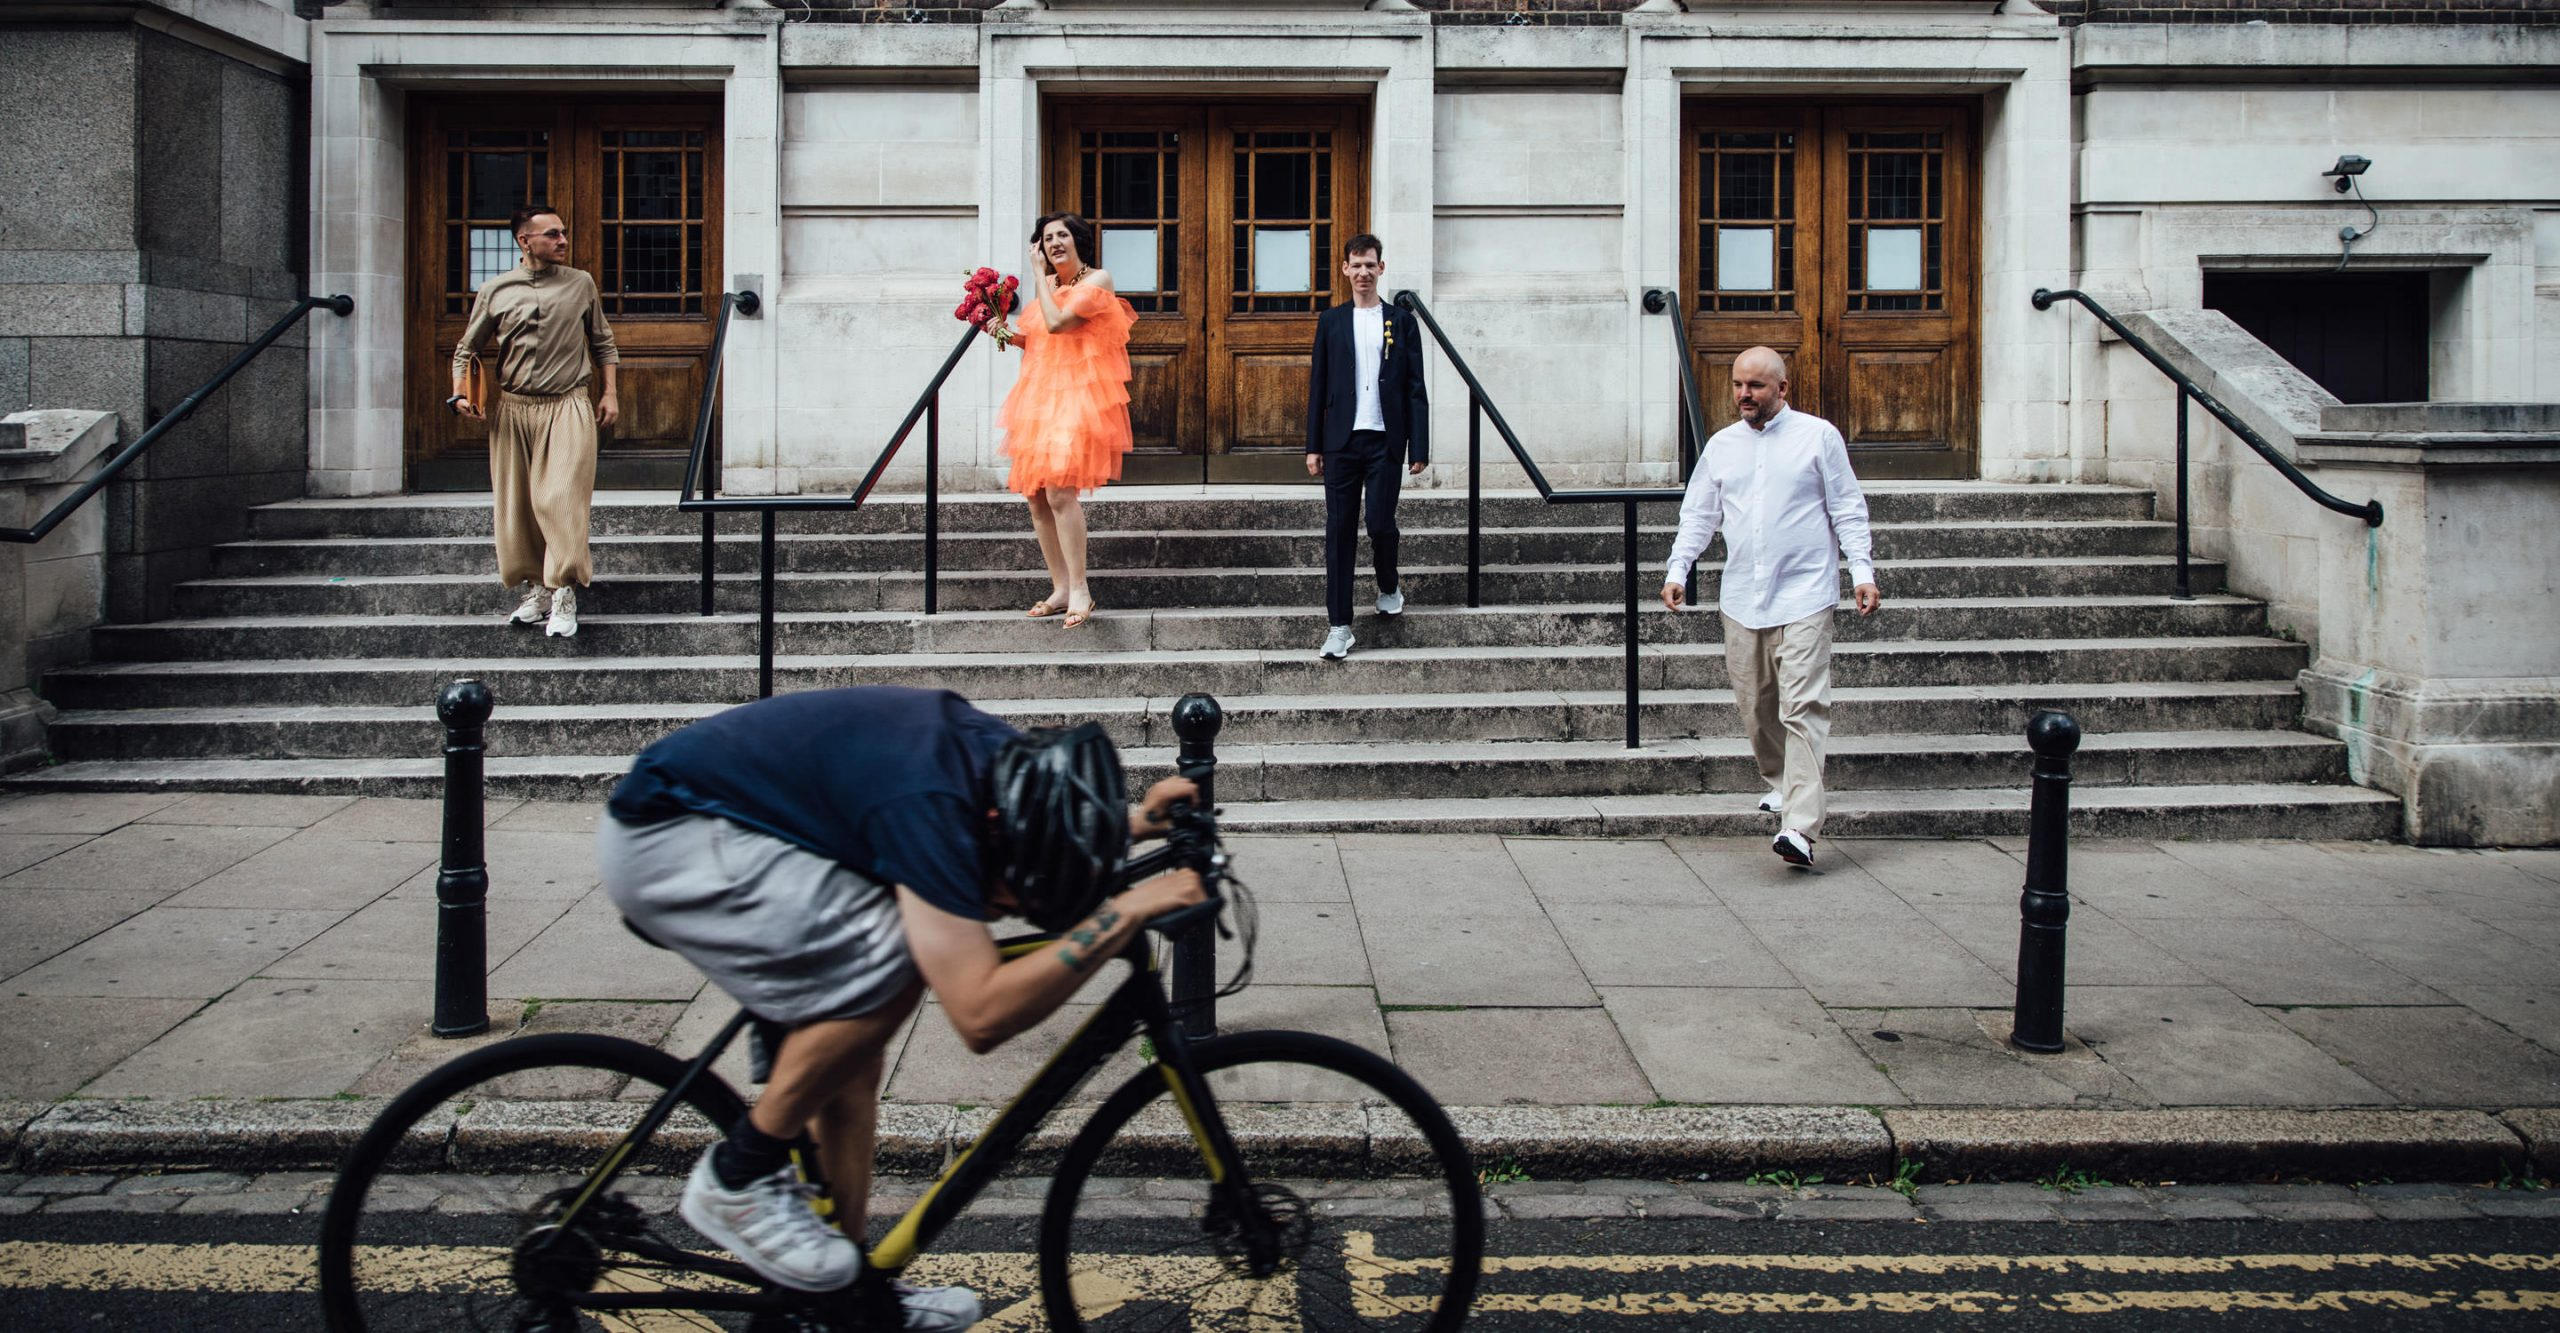 The first post-lockdown elopement, in London